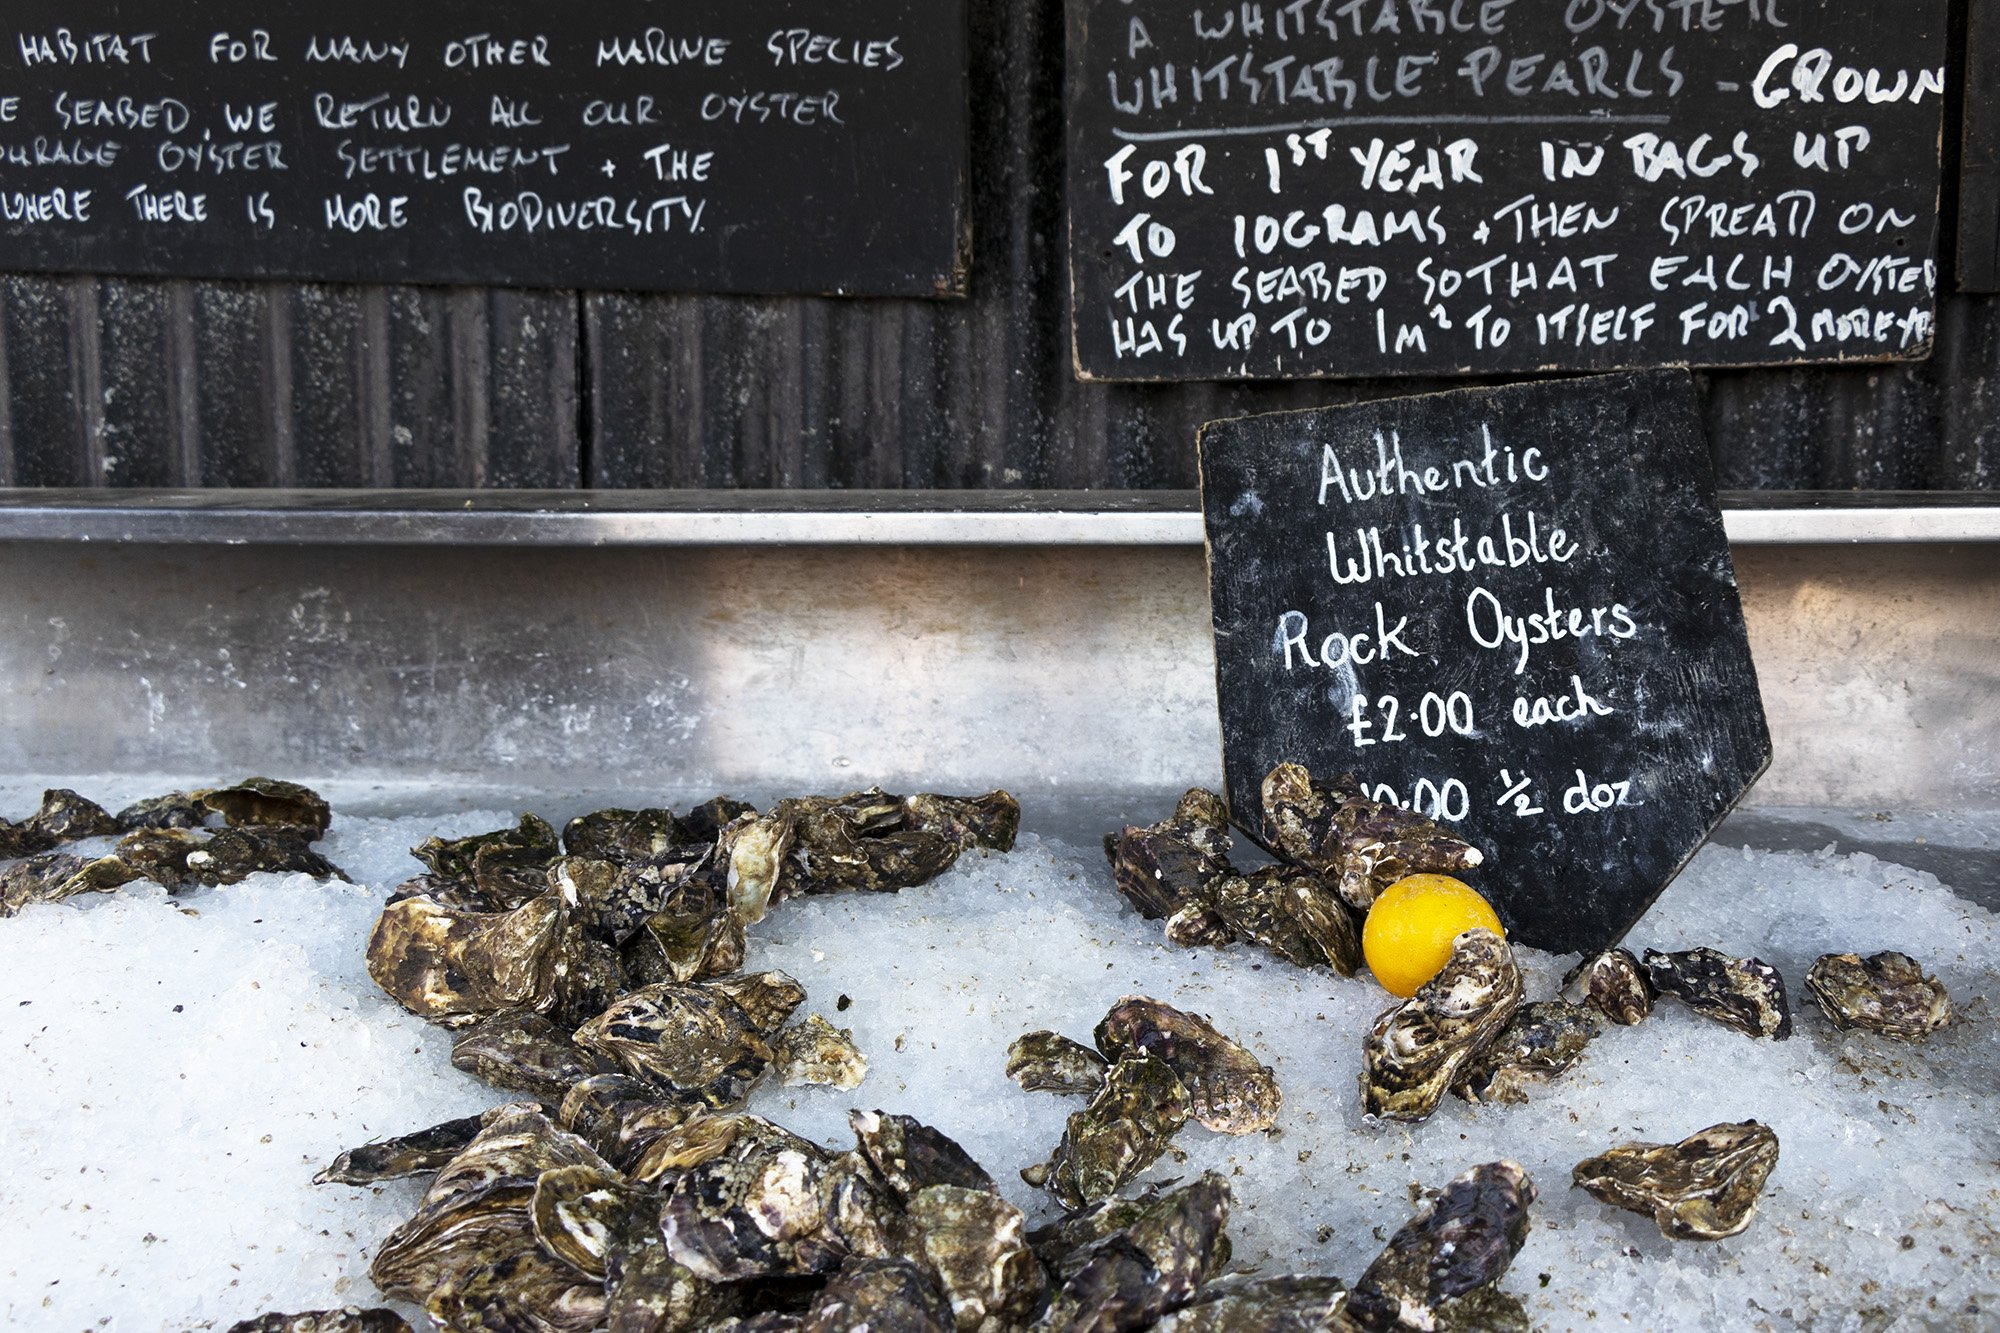 Whitstable oysters at The Forge